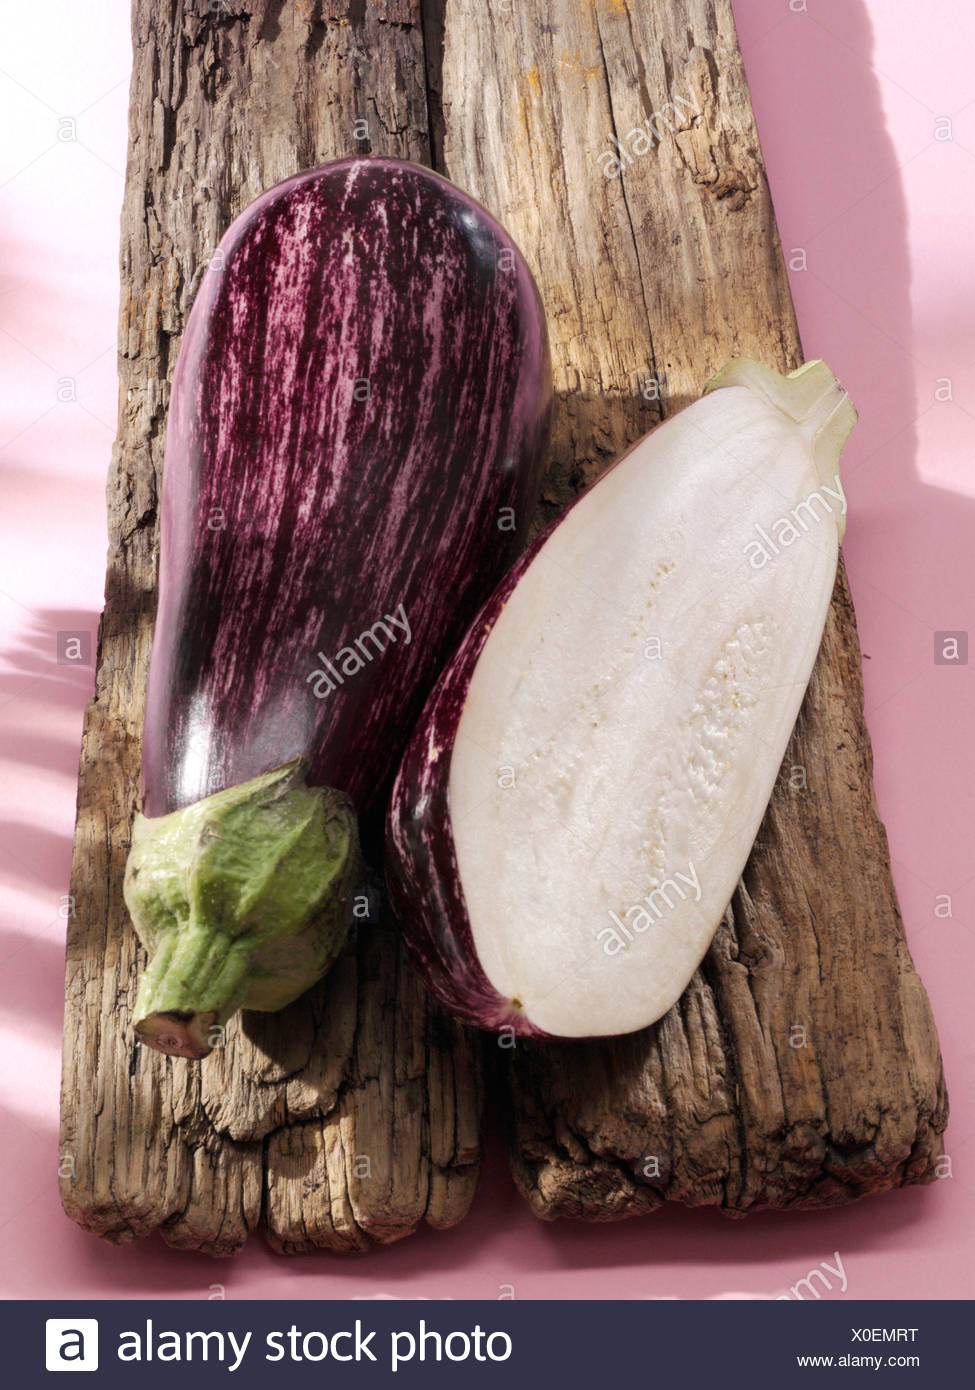 Two aubergines or eggplants (Solanum tuberosum) on a wooden board Stock Photo